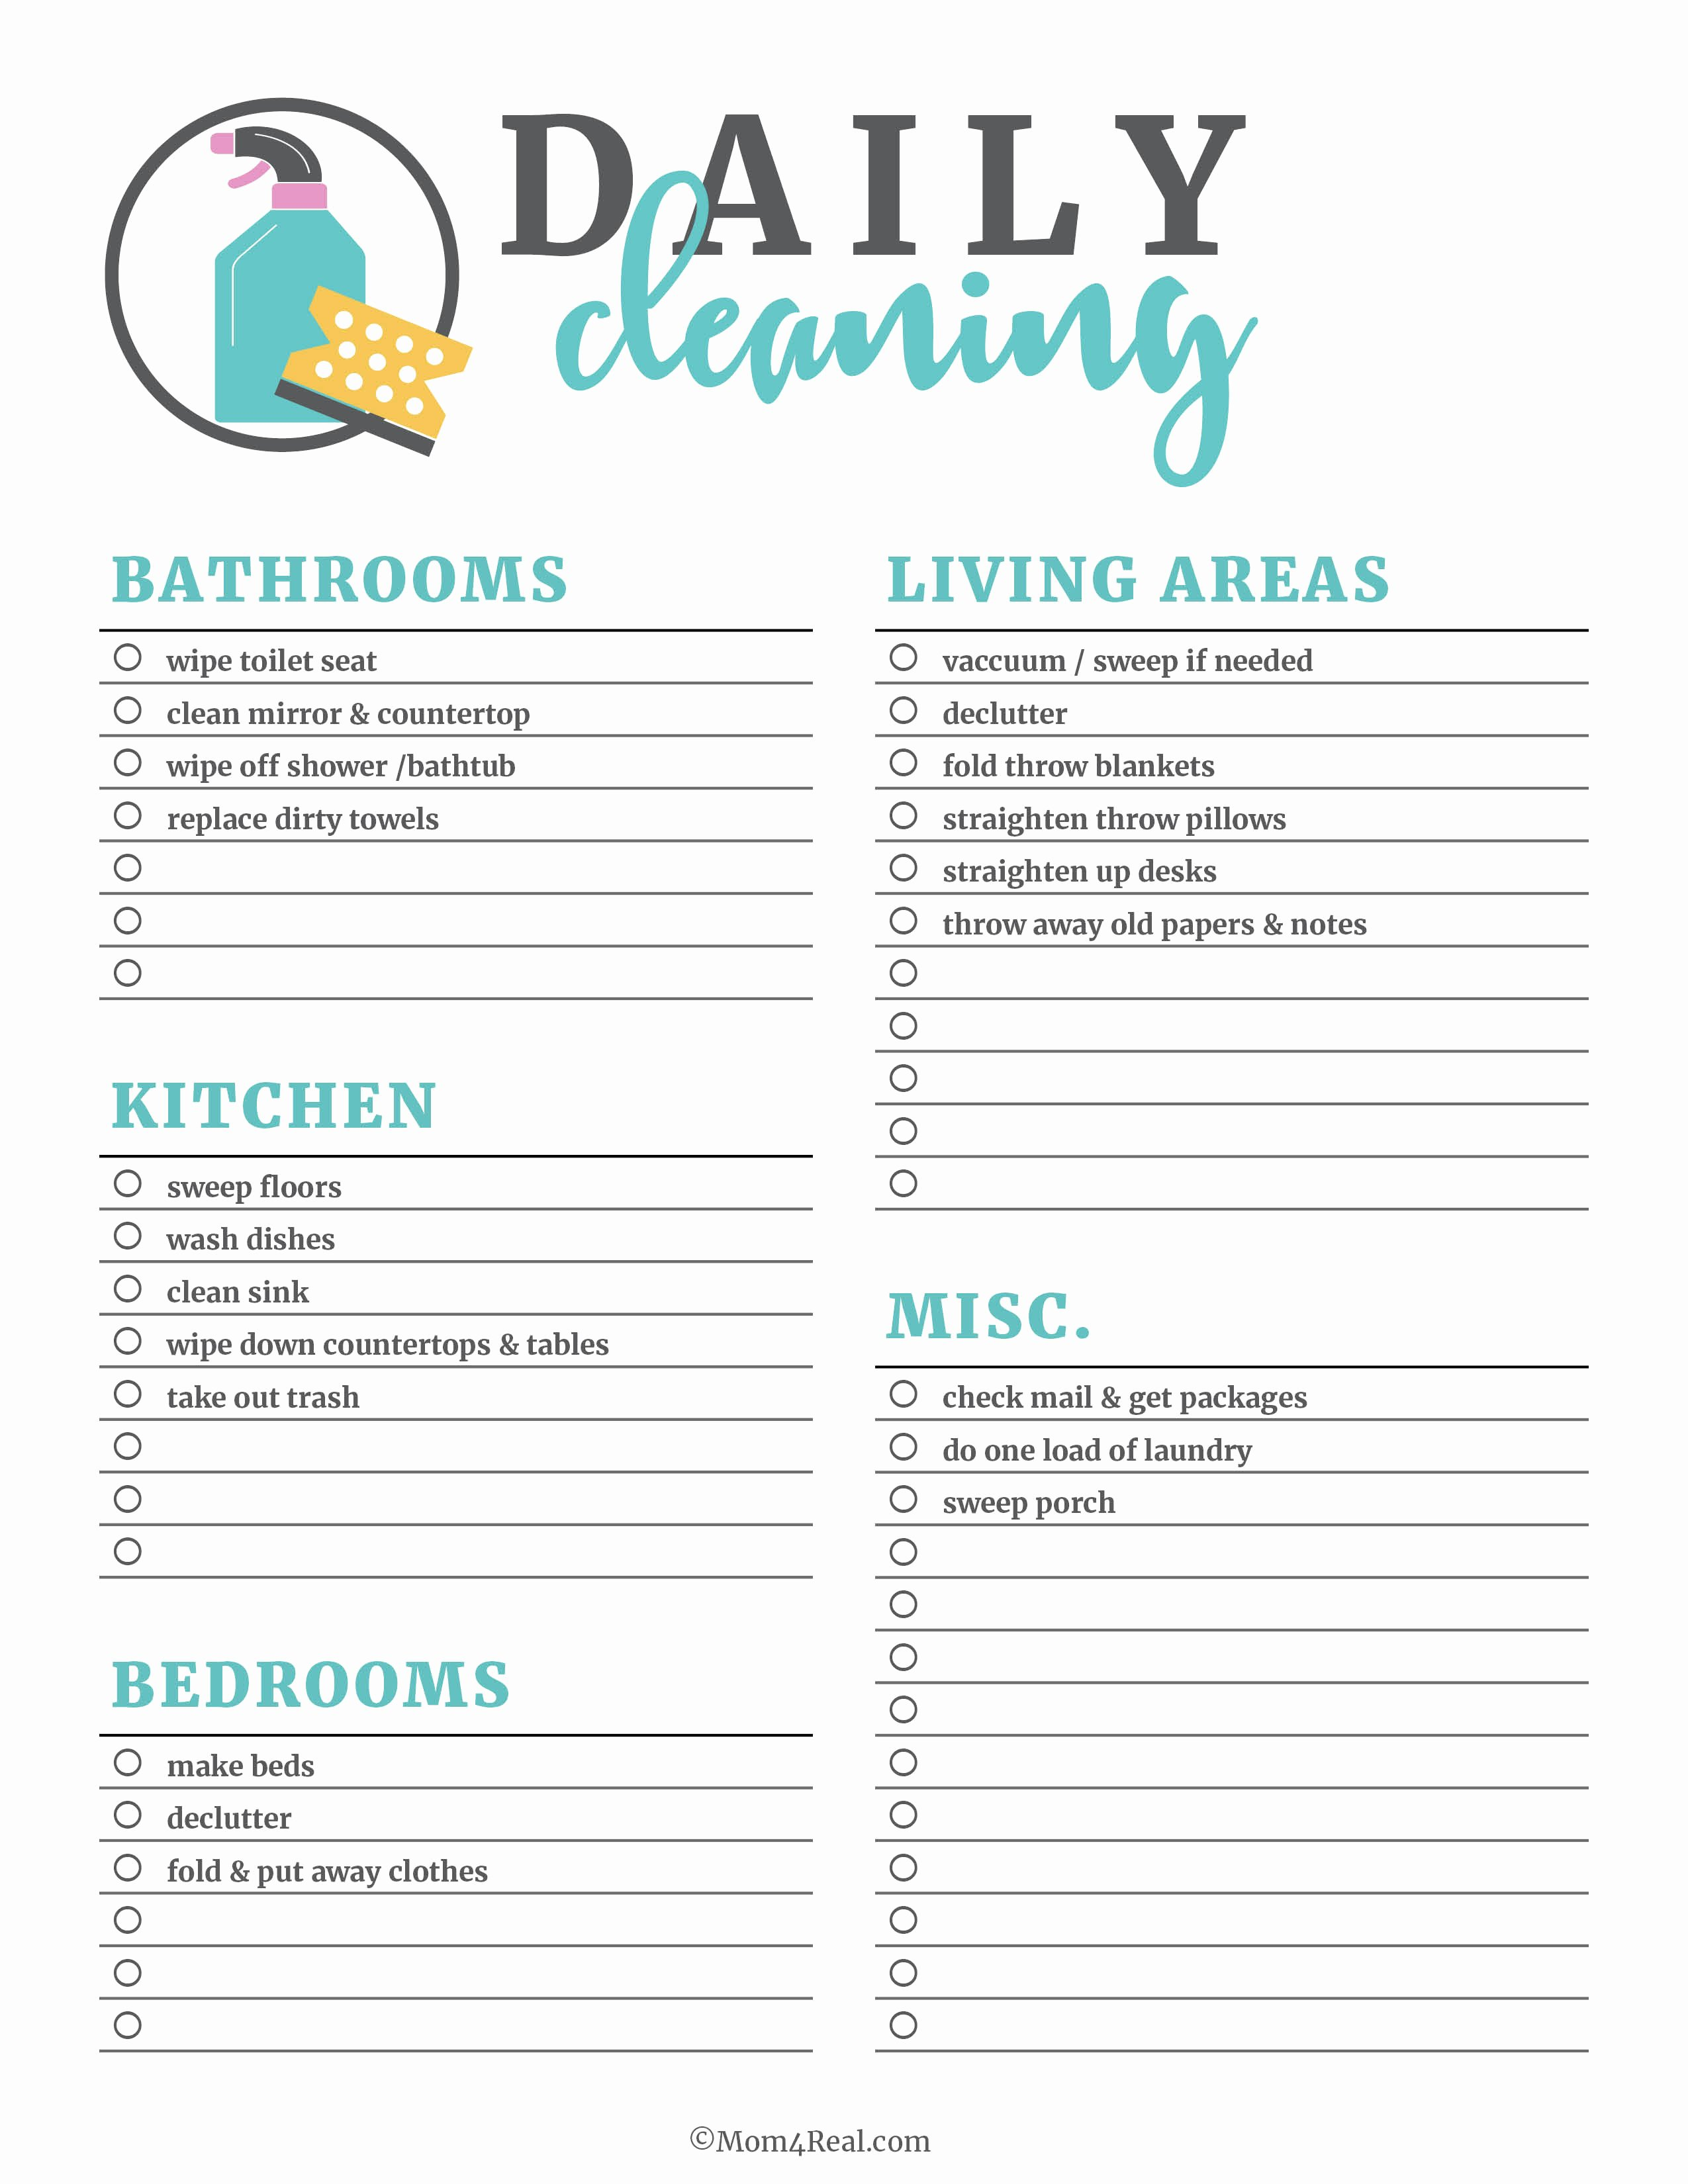 Residential Cleaning Checklist Template Fresh Printable Cleaning Checklists for Daily Weekly and